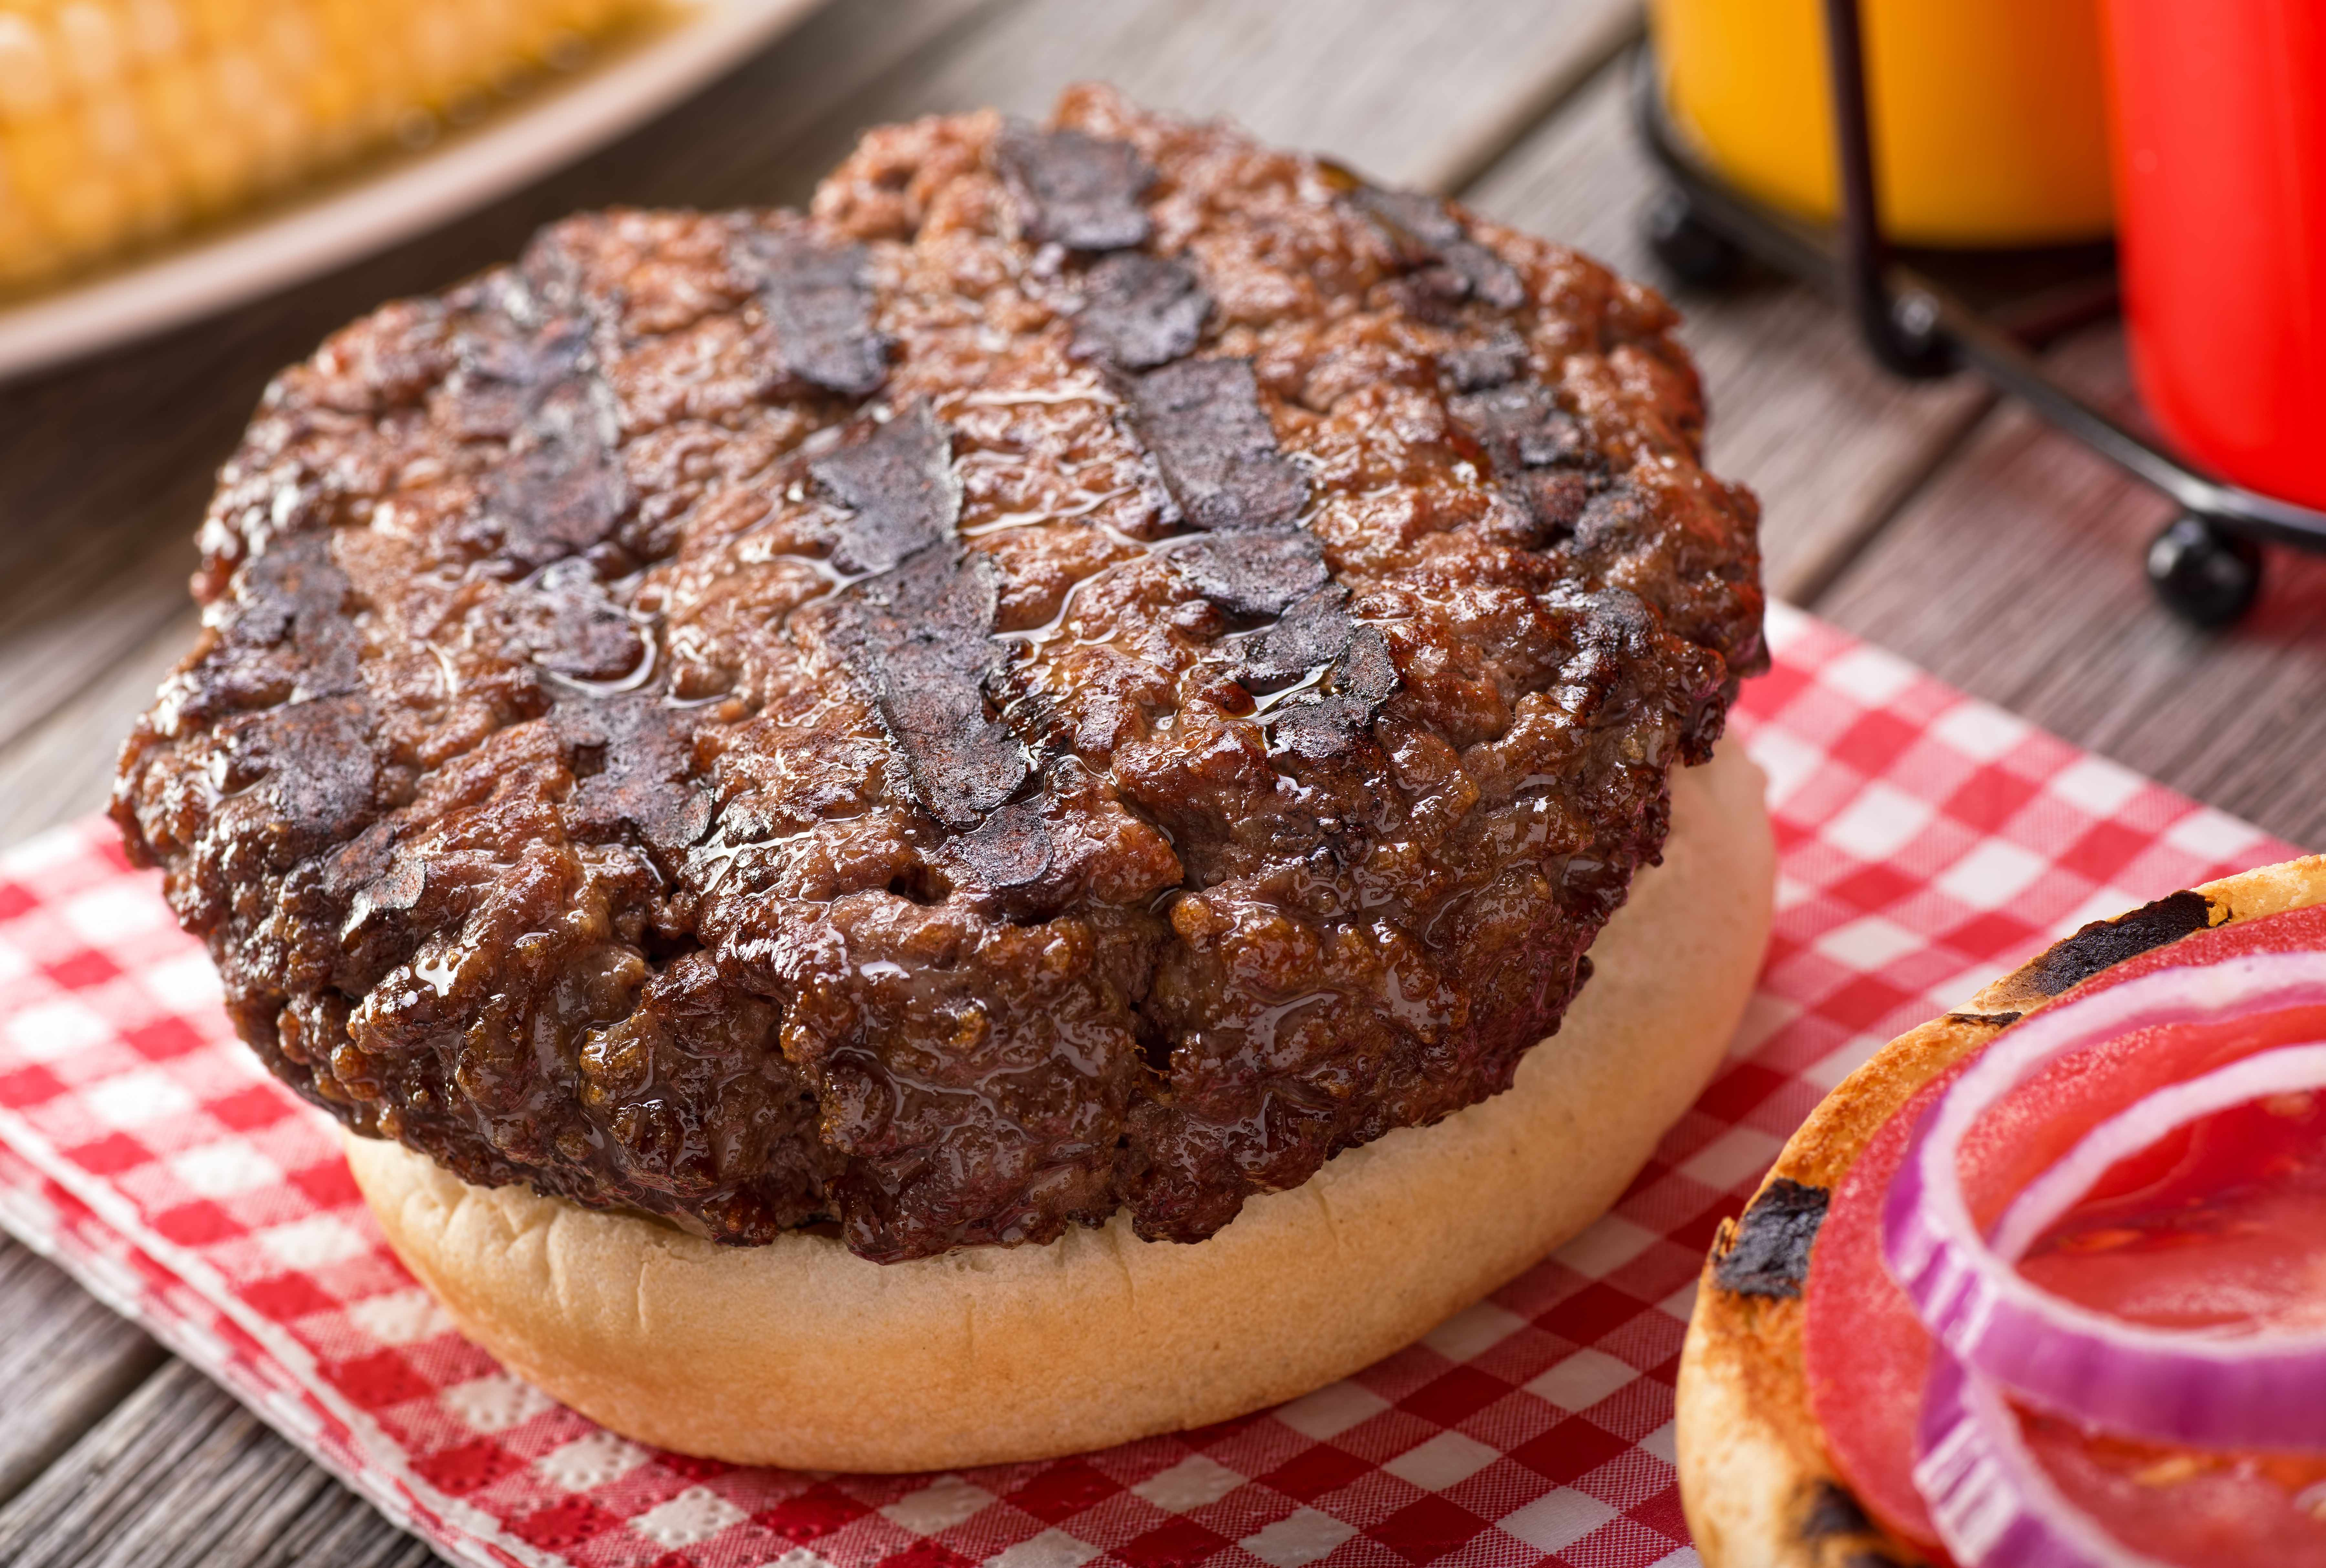 cooked hamburger patty on a bun